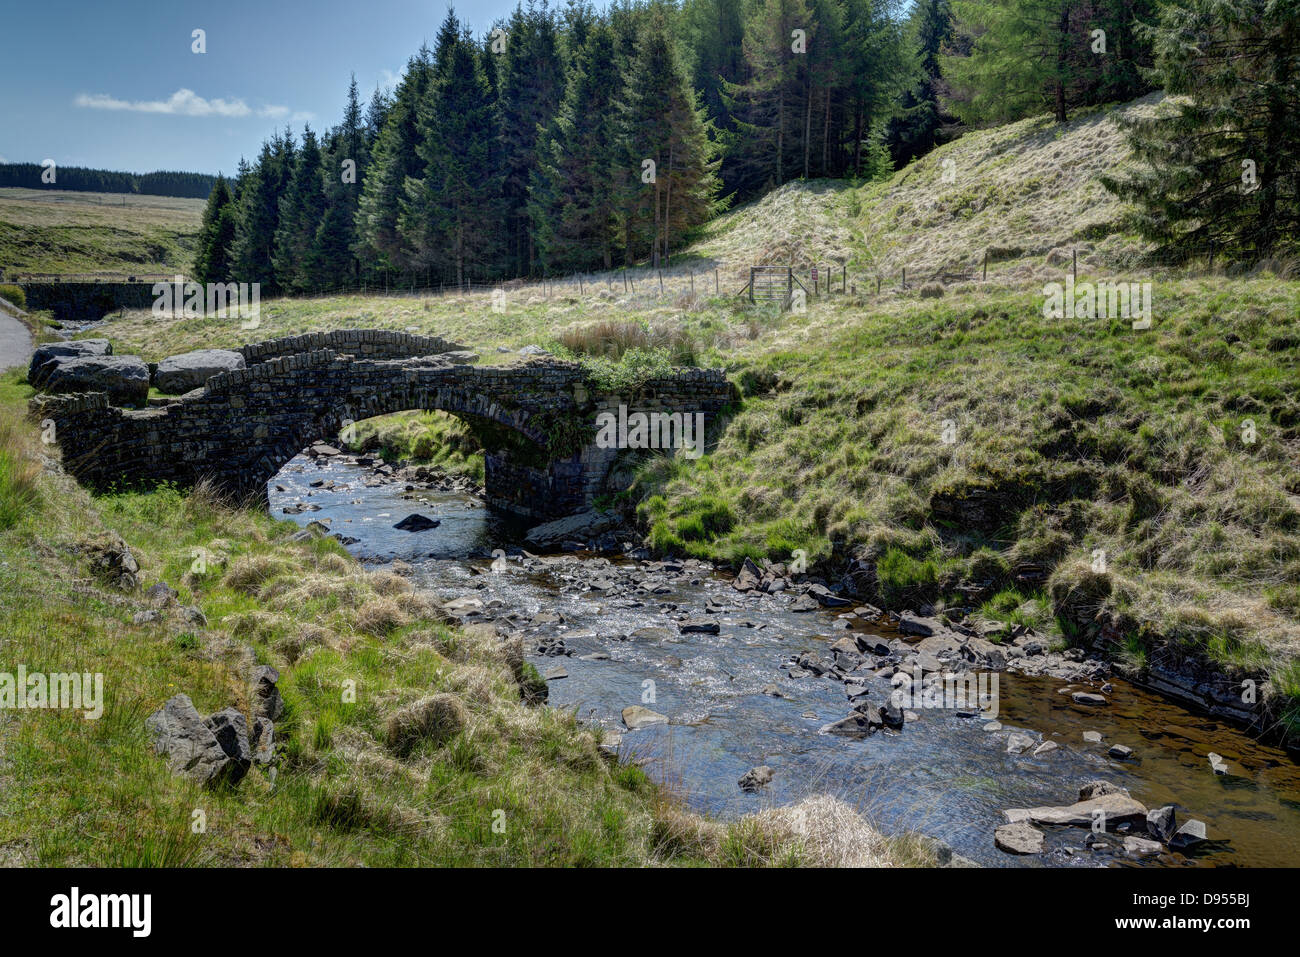 Stone bridge crossing a stream with conifer plantation beyond - Stock Image